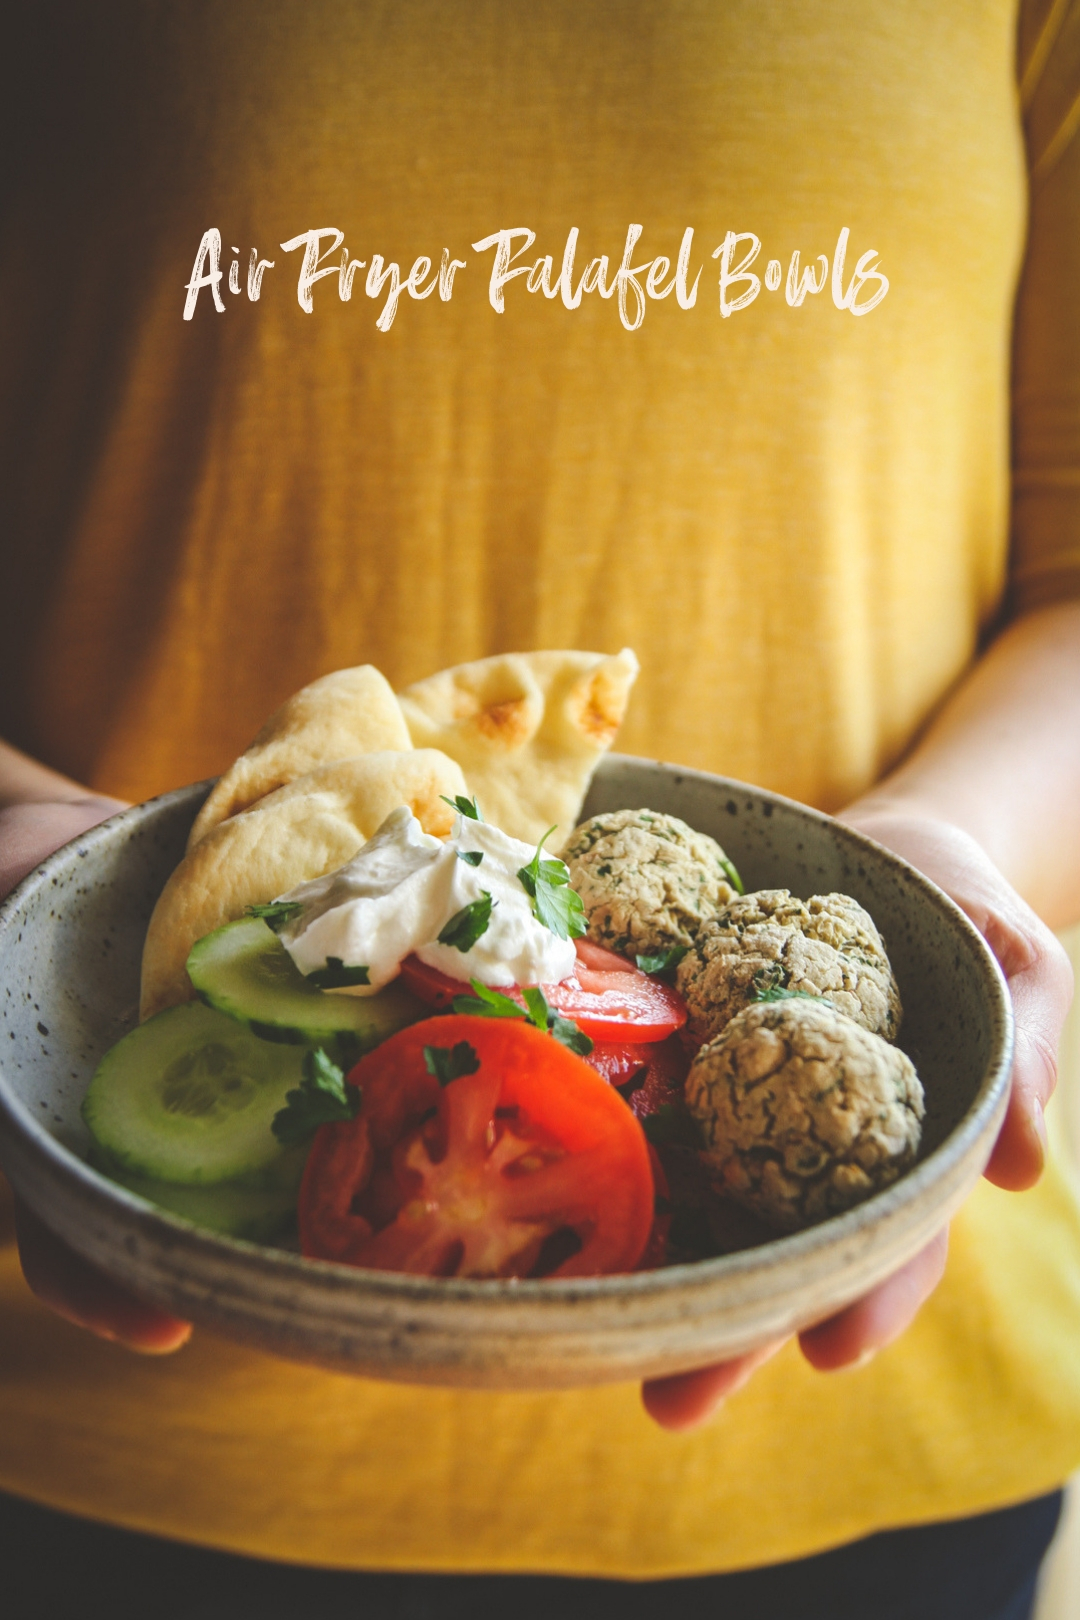 Air fryer falafel dinner bowls, air fryer vegetarian recipe, air fryer dinner recipe, vegetarian air fryer recipe, falafel bowls, healthy dinner recipes